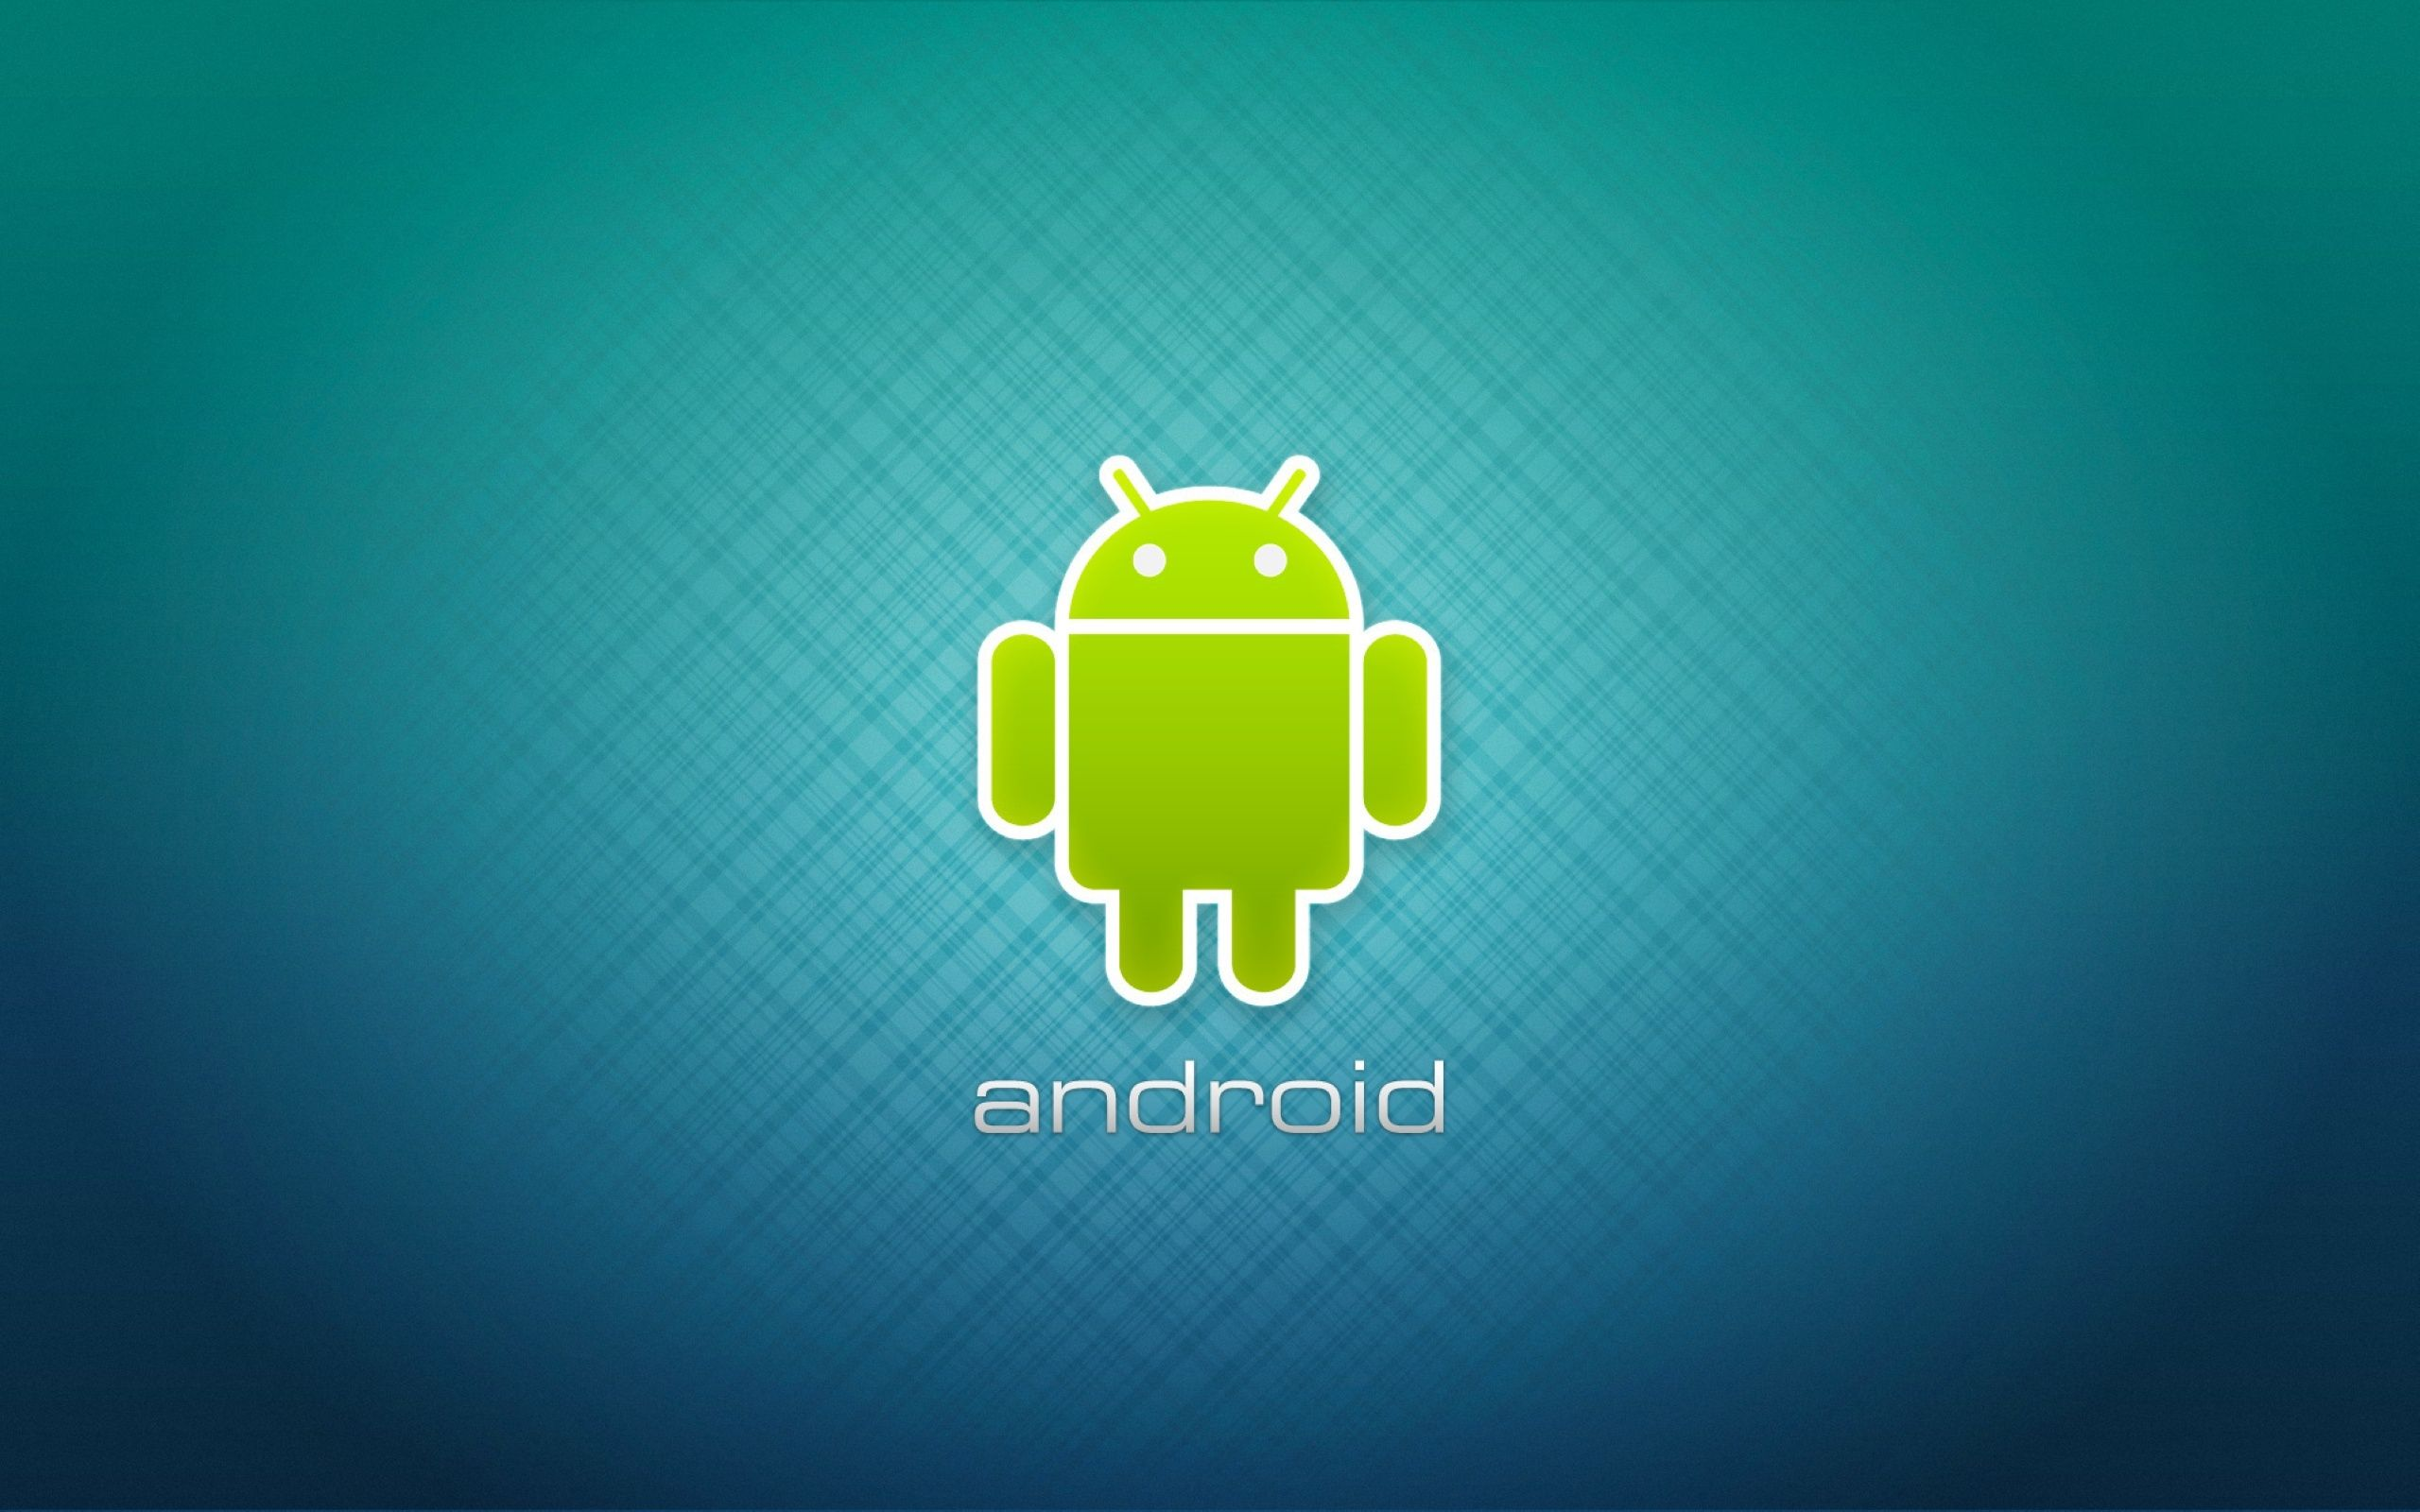 Android Logo Wallpapers Hd Wallpapers Backgrounds Images Art Photos Free Android Wallpaper Android Apps Android Tablets